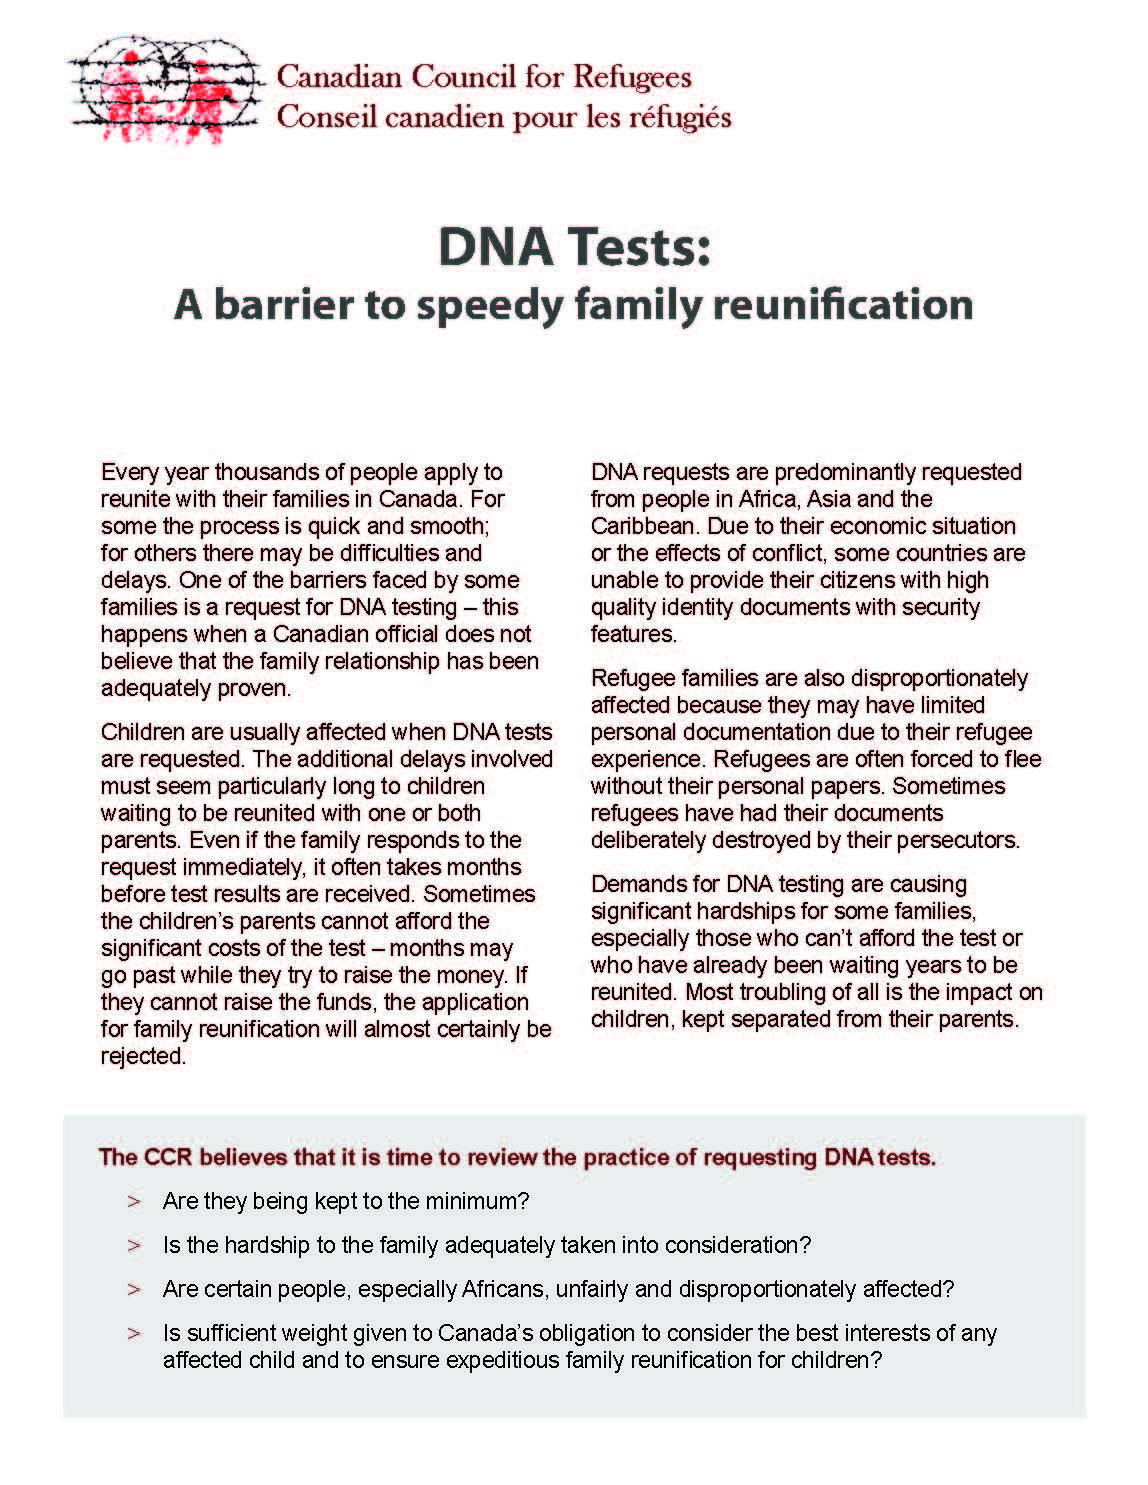 DNA Tests: A barrier to speedy family reunification